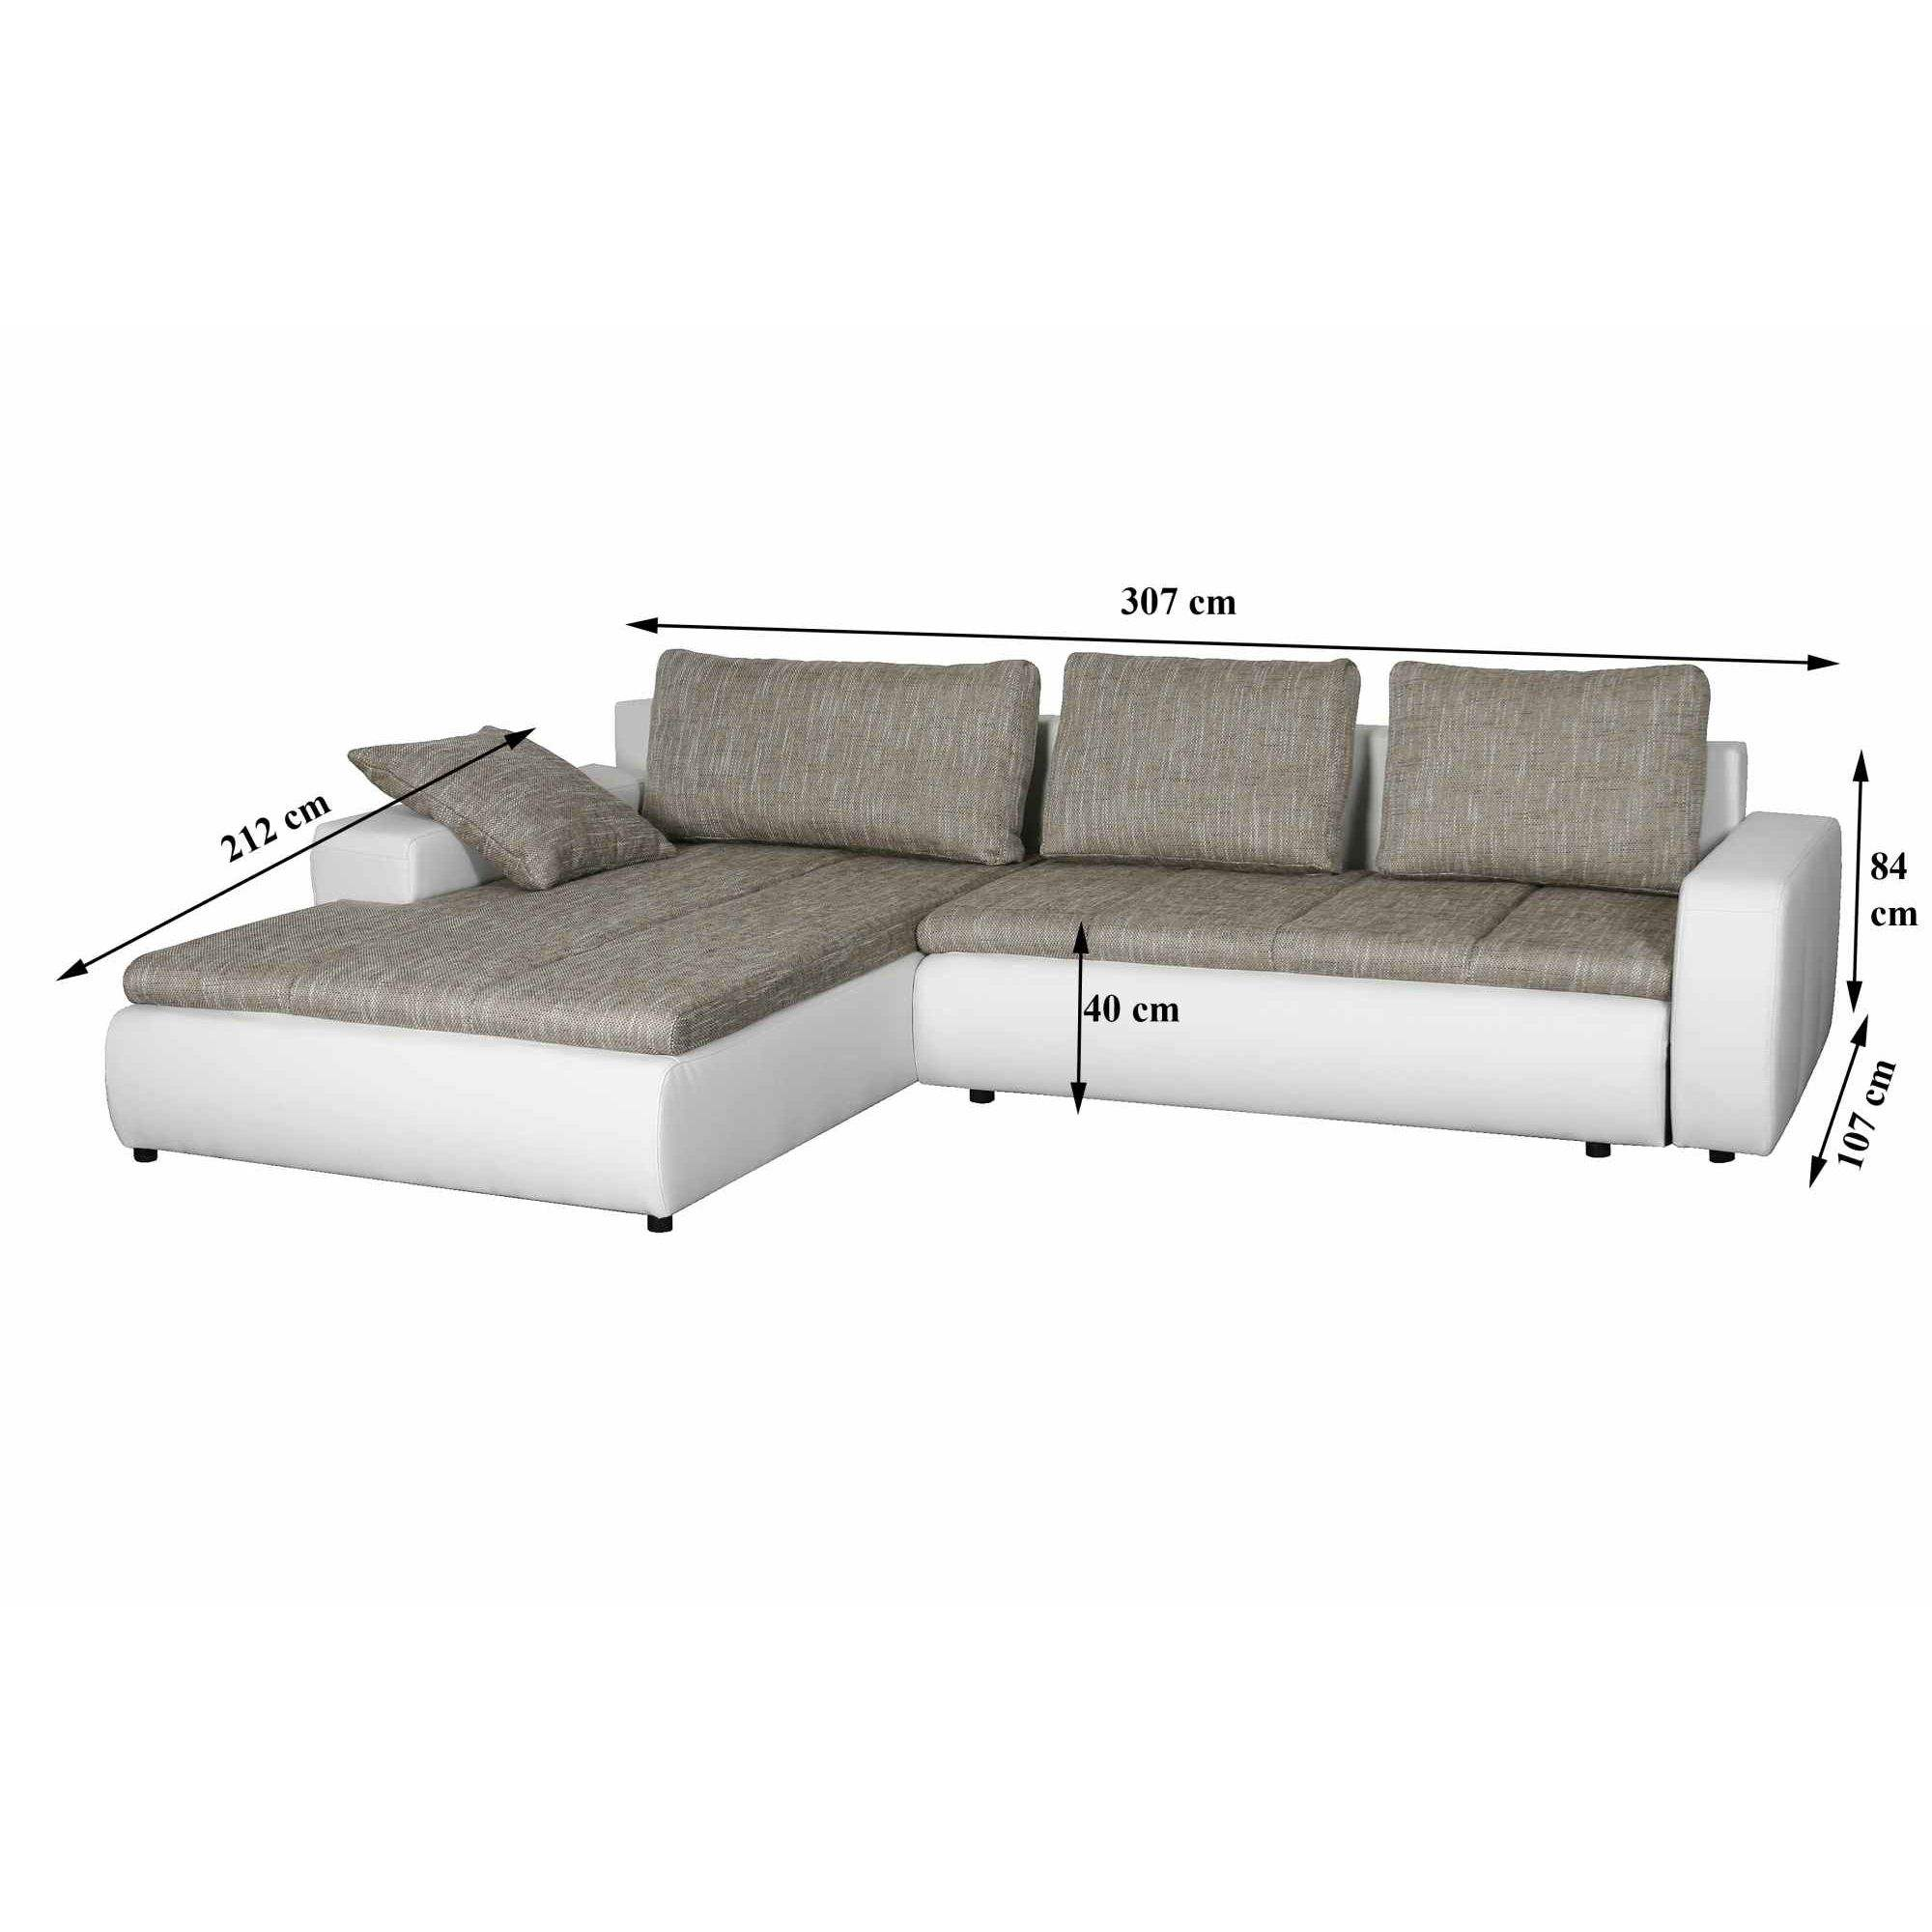 Deco in paris canape d angle convertible beige et blanc design joya joya be - Canape angle convertible design ...